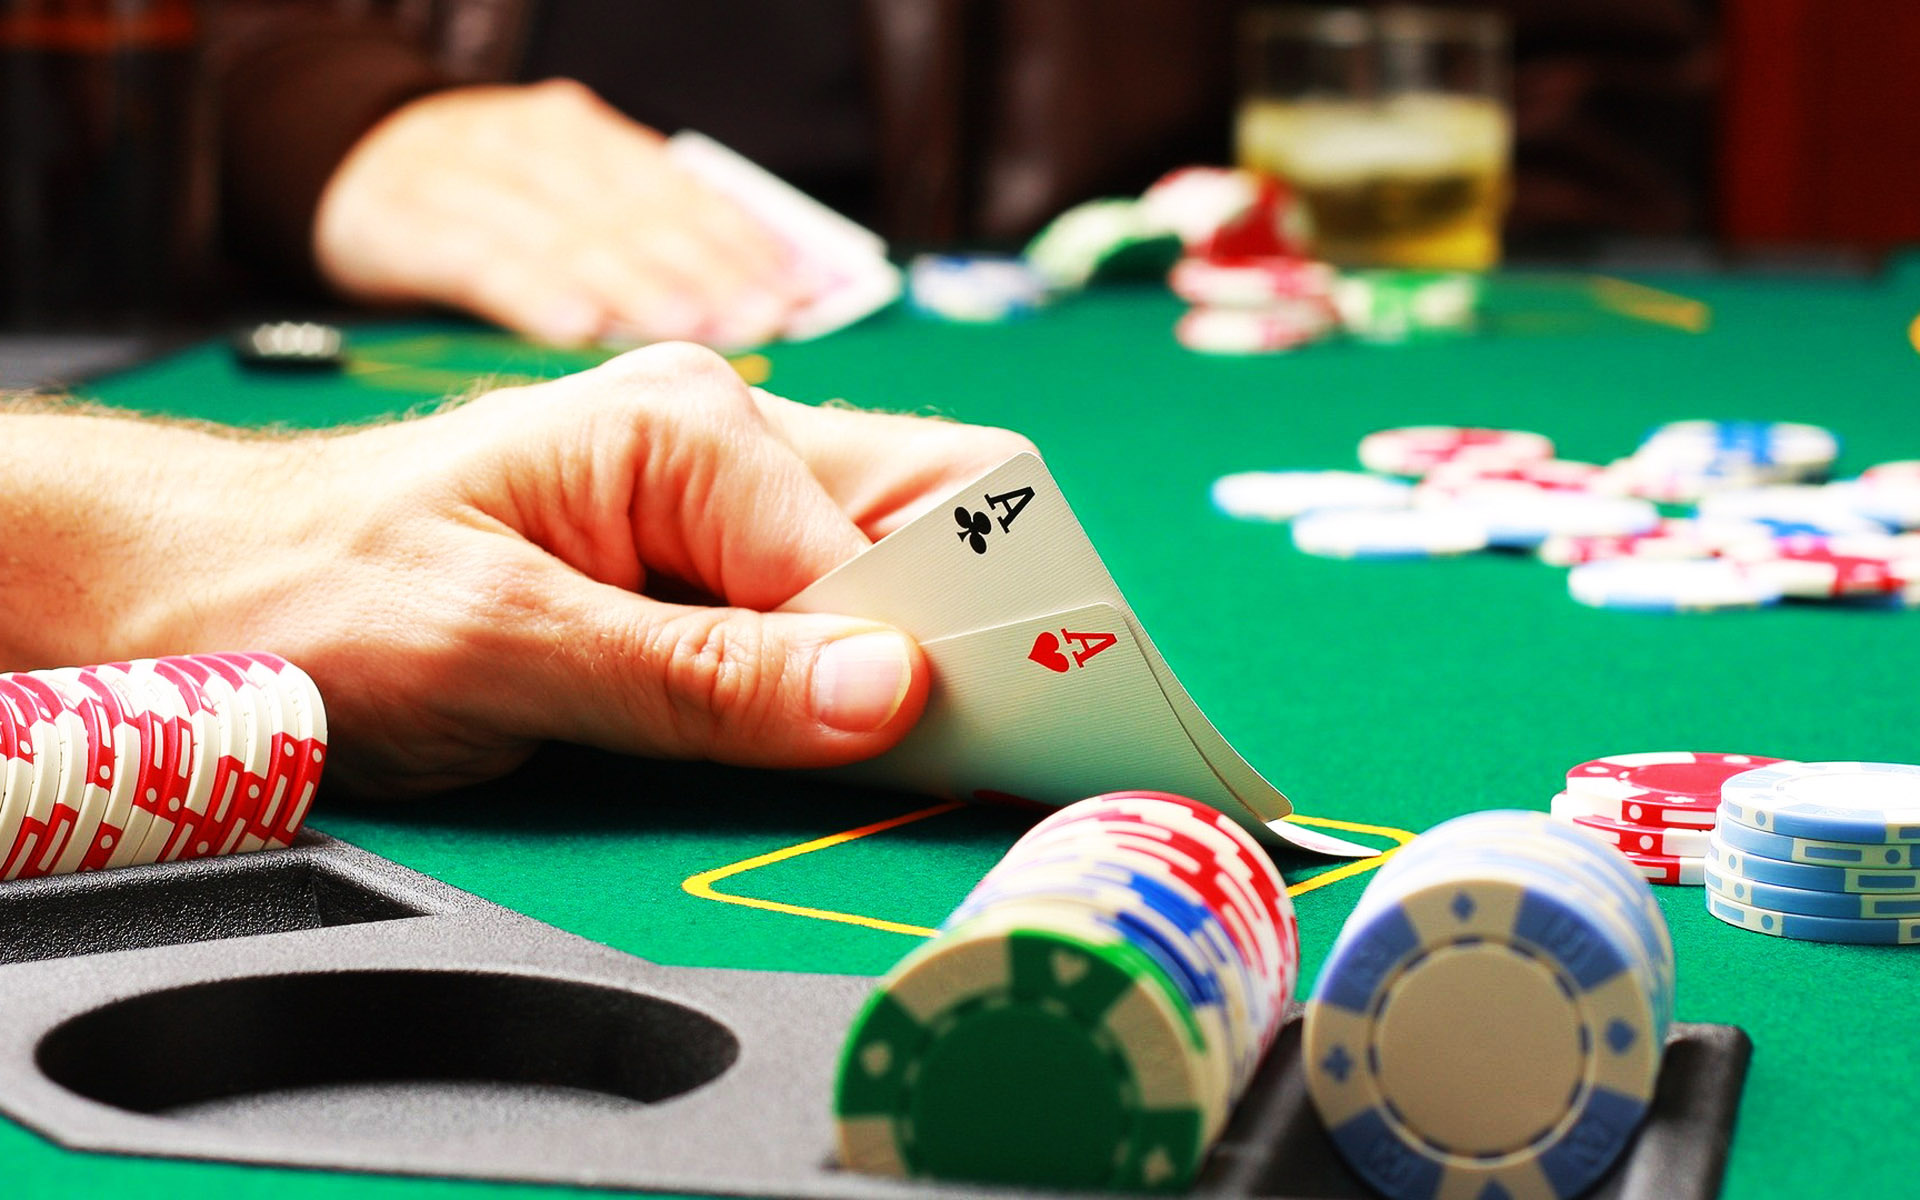 PLAY TEXAS HOLD EM POKER